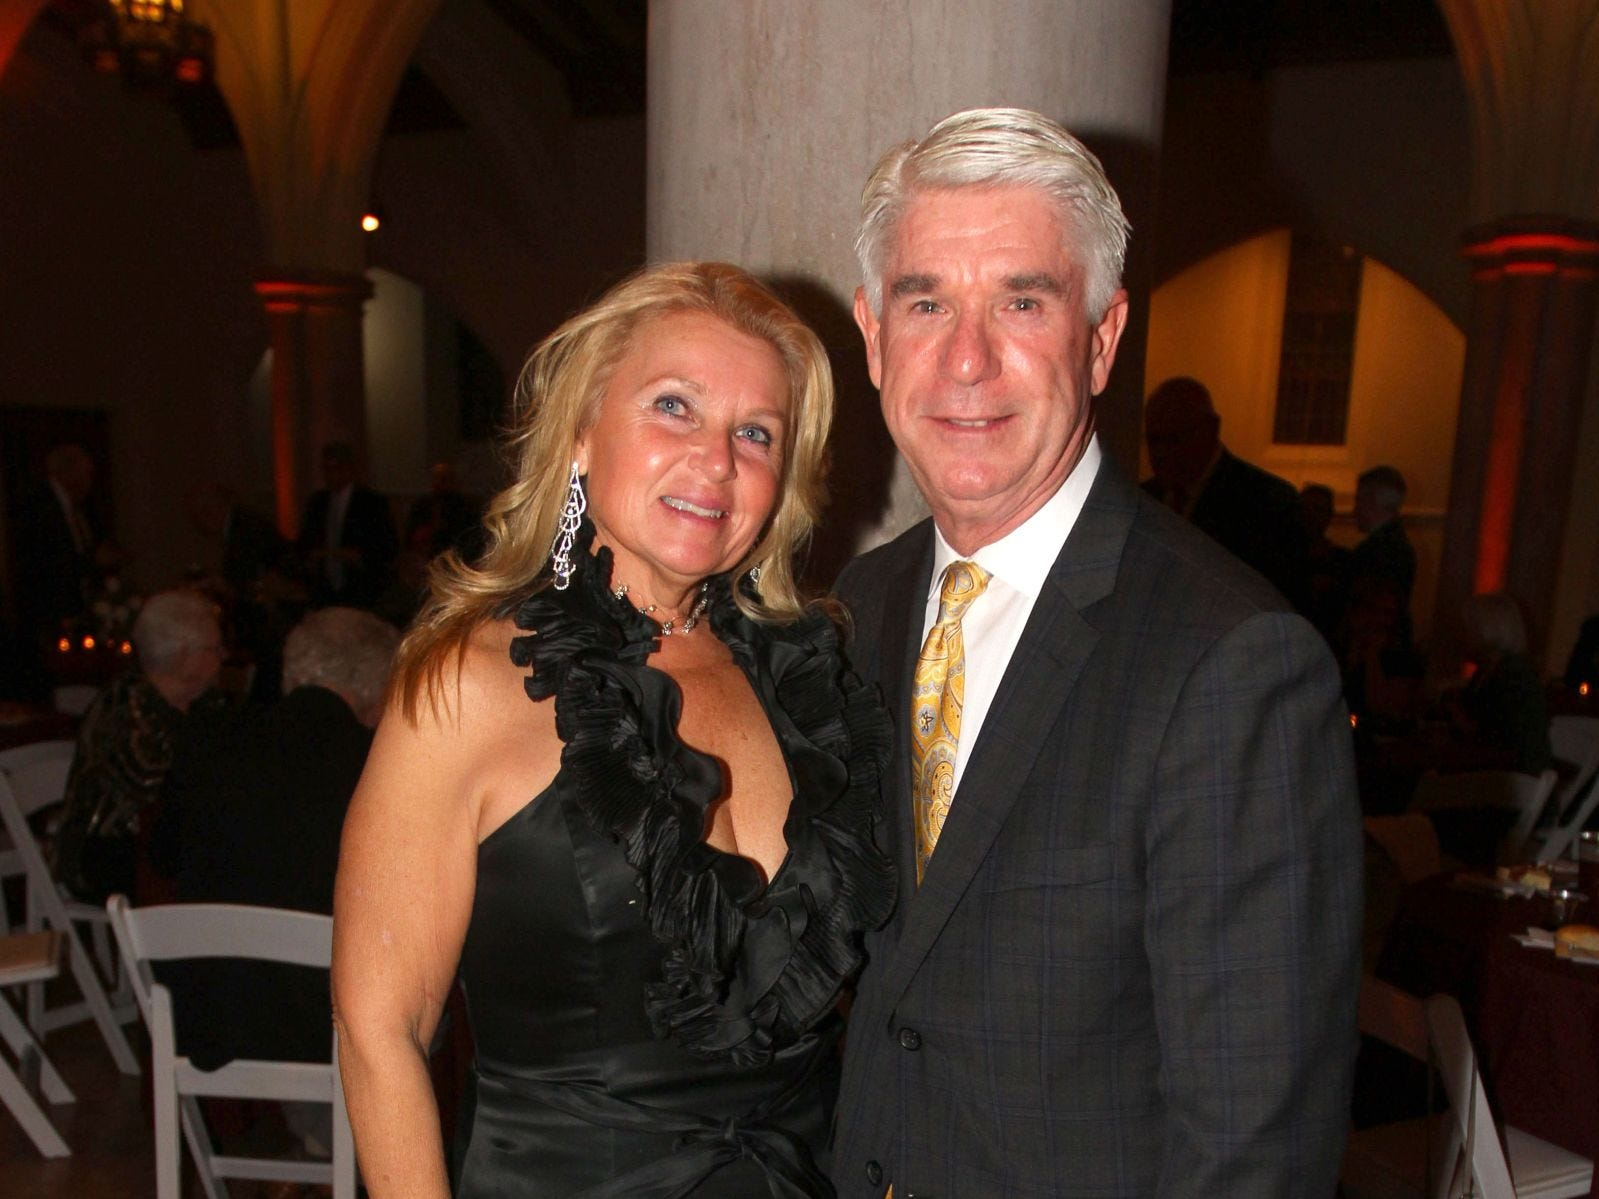 Hayley Rooney; Assemblyman Kevin Rooney. Wyckoff Family YMCA hosted its 75th anniversary gala to celebrate its benefactors, held at the Rio Vista seminary in Mahwah. 11/16/2018